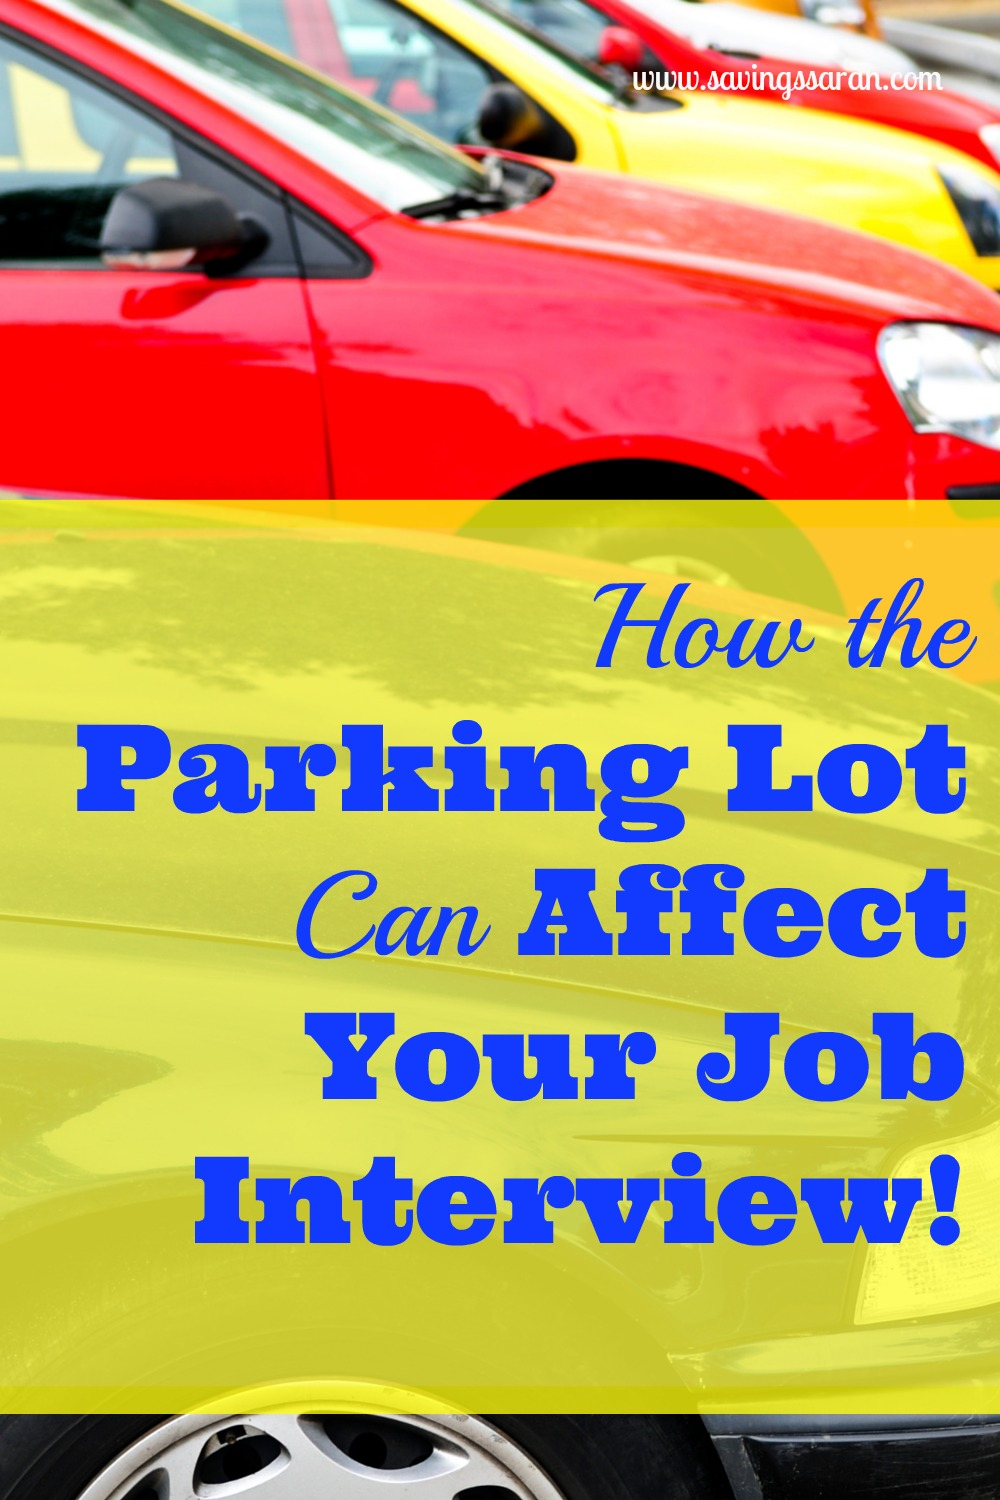 How the Parking Lot Can Affect Your Job Interview